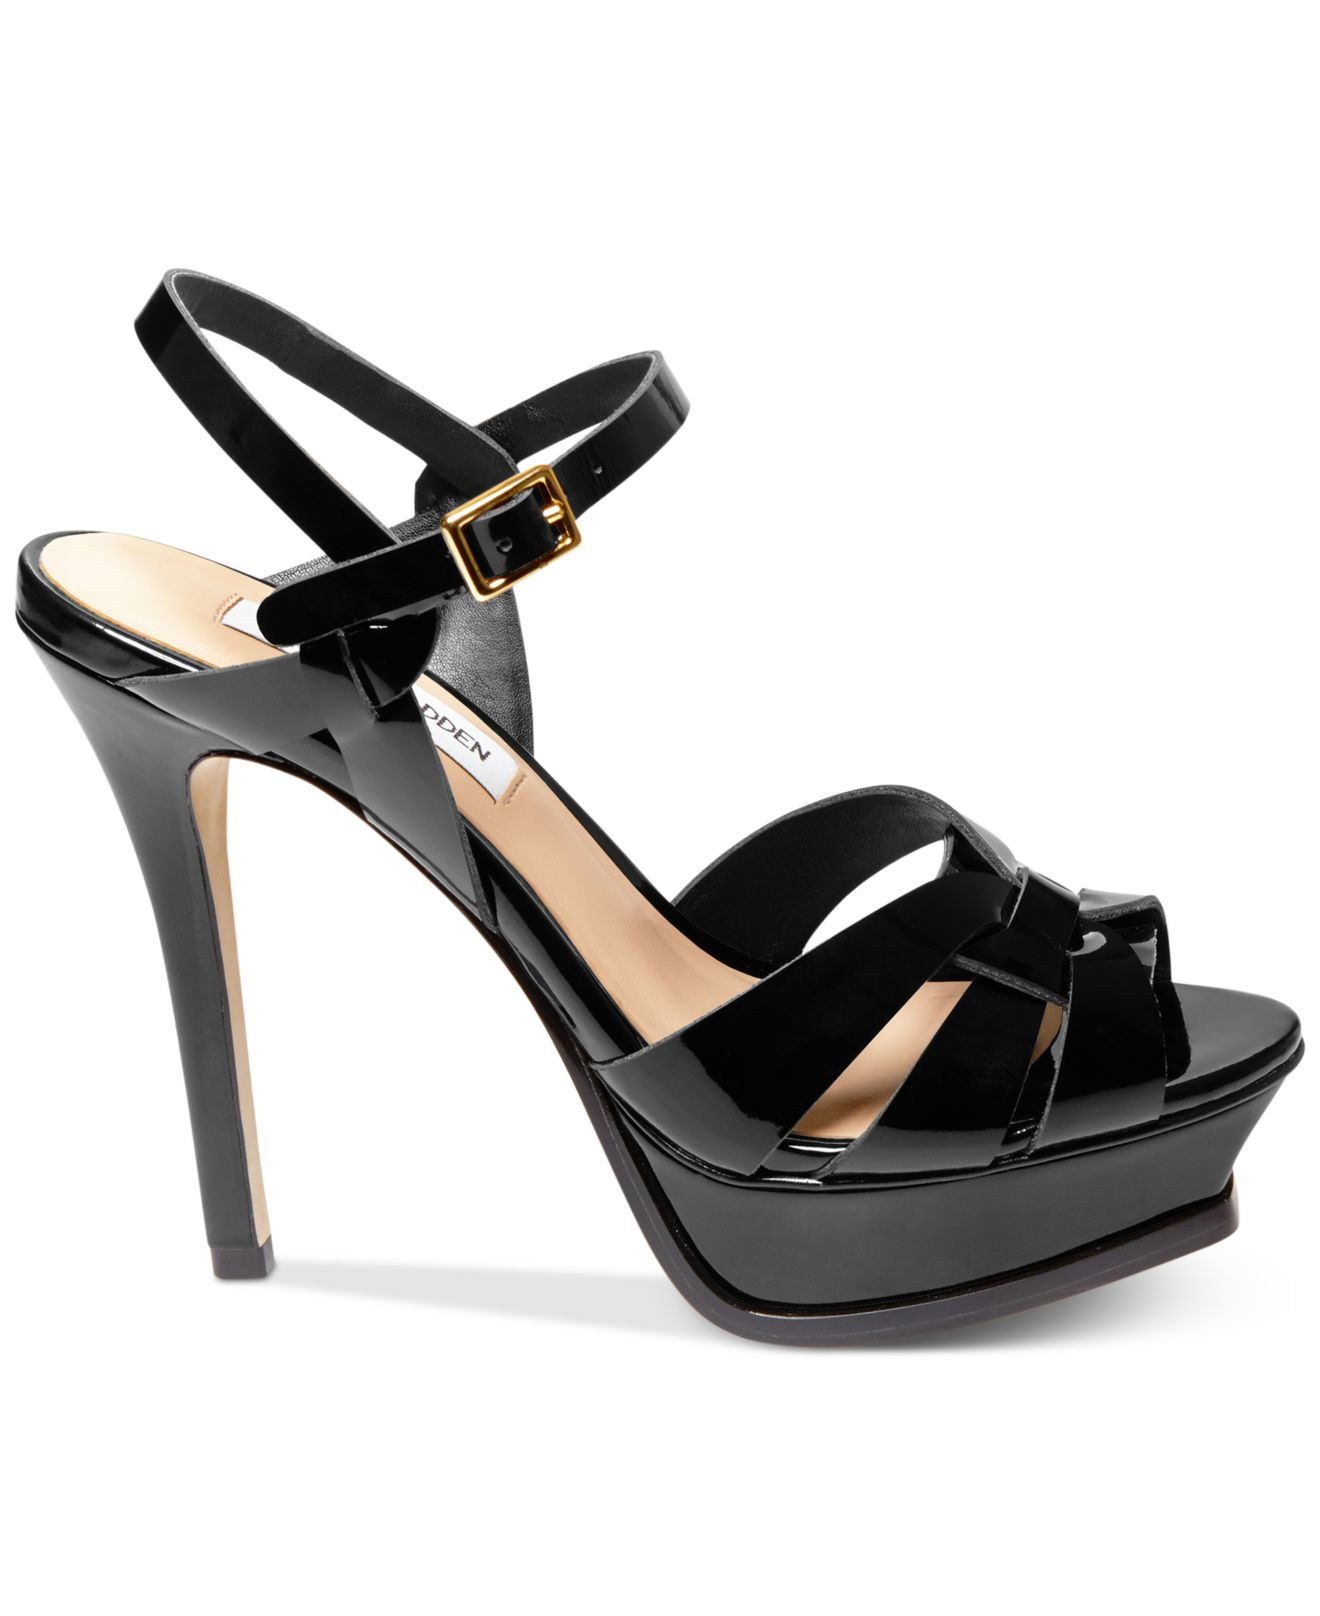 4fc9b52488f Lyst - Steve madden Women s Kananda Platform High-heel Sandals in Black